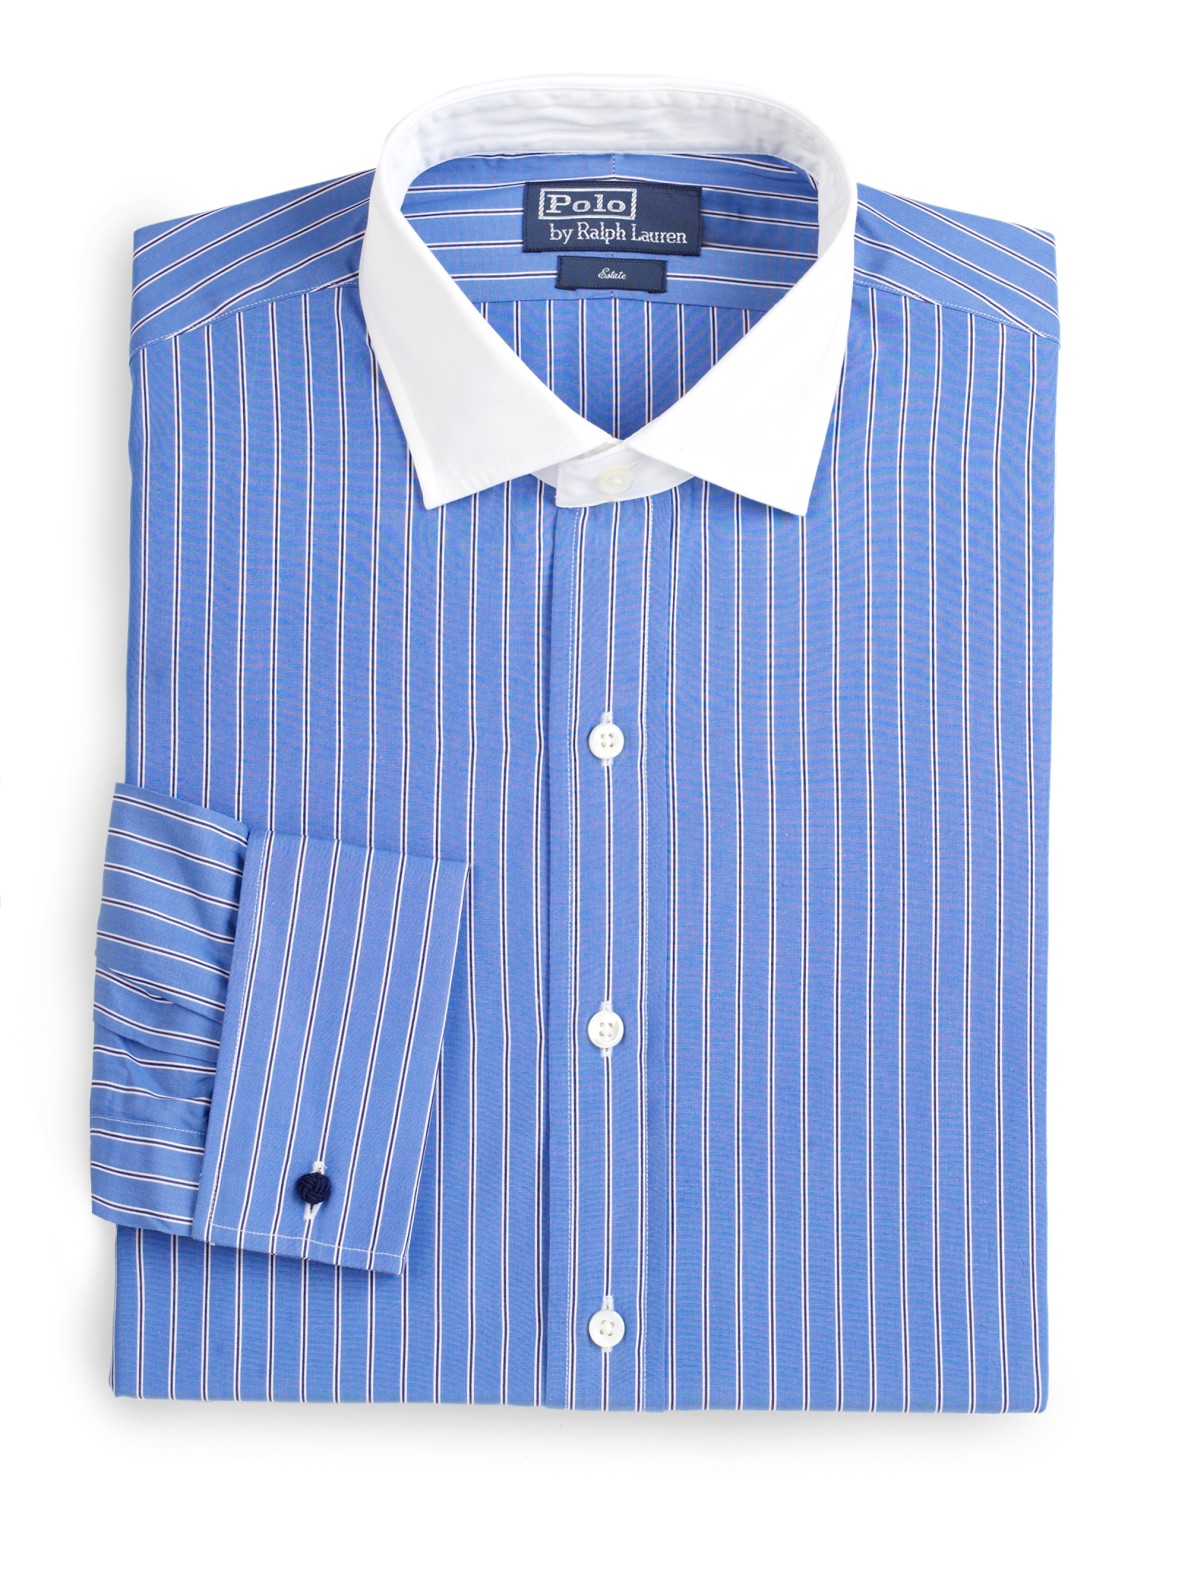 polo ralph lauren custom fit striped cotton poplin dress